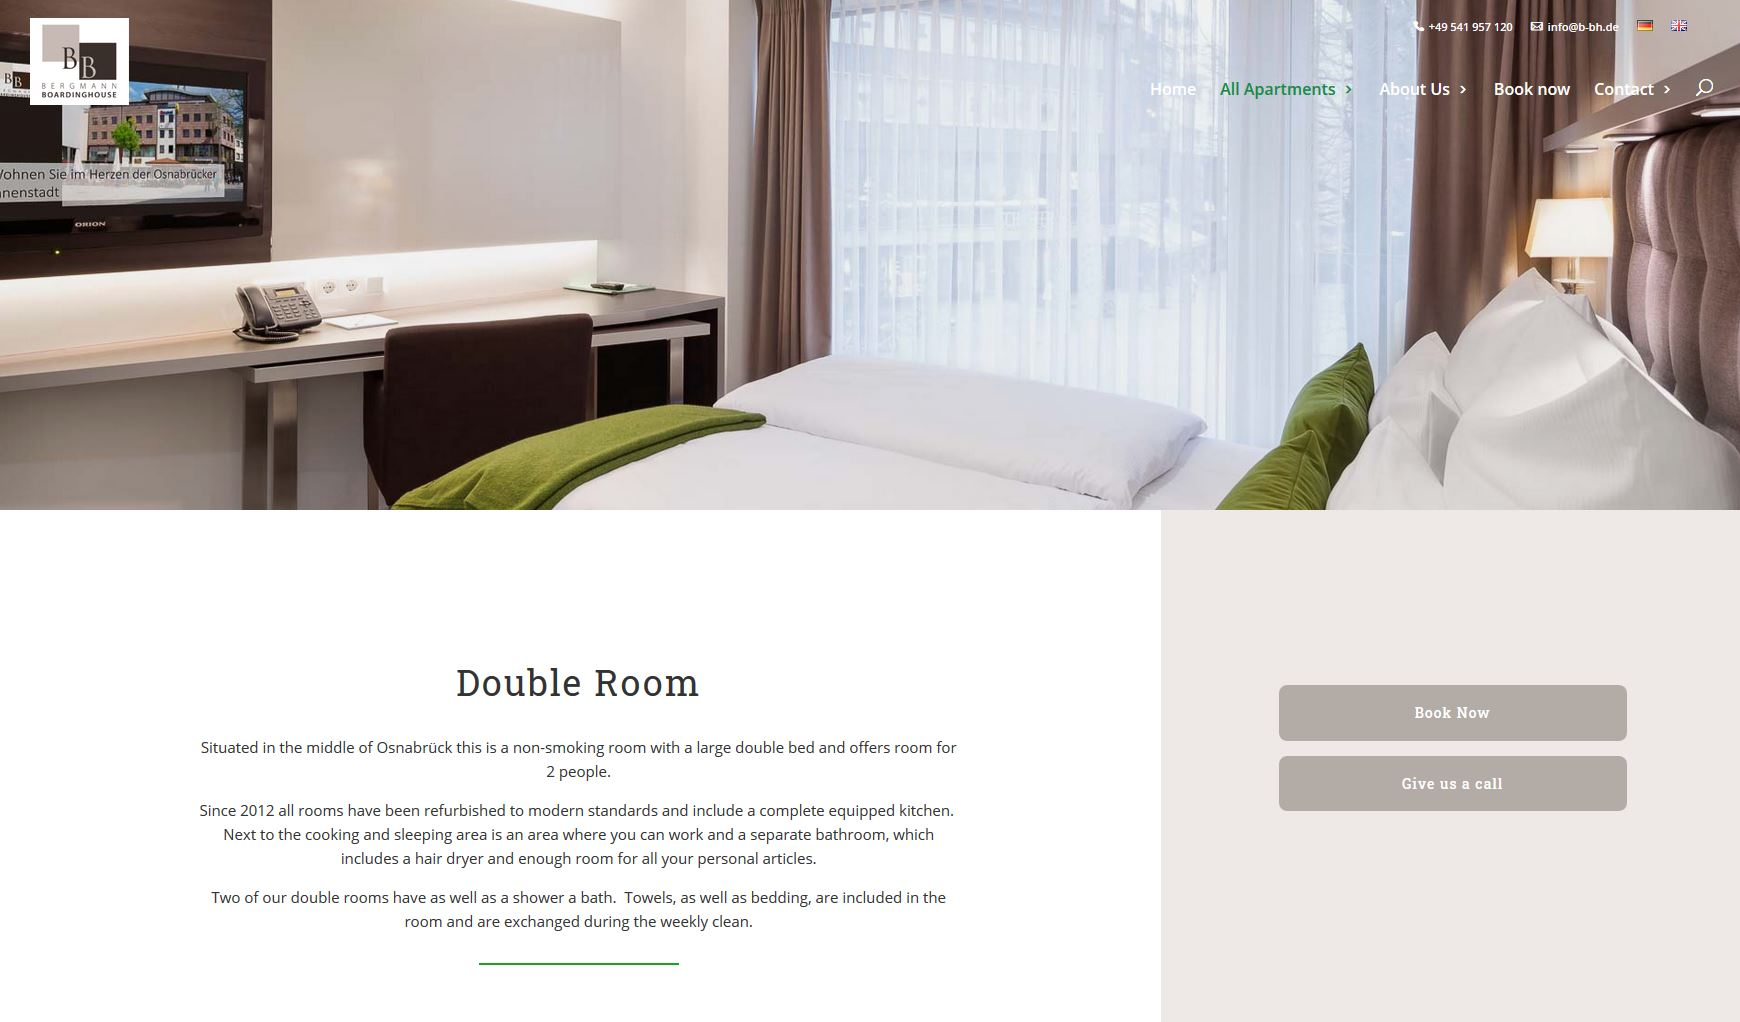 Bergmann - cultbooking - book now - button - best hotel booking engine